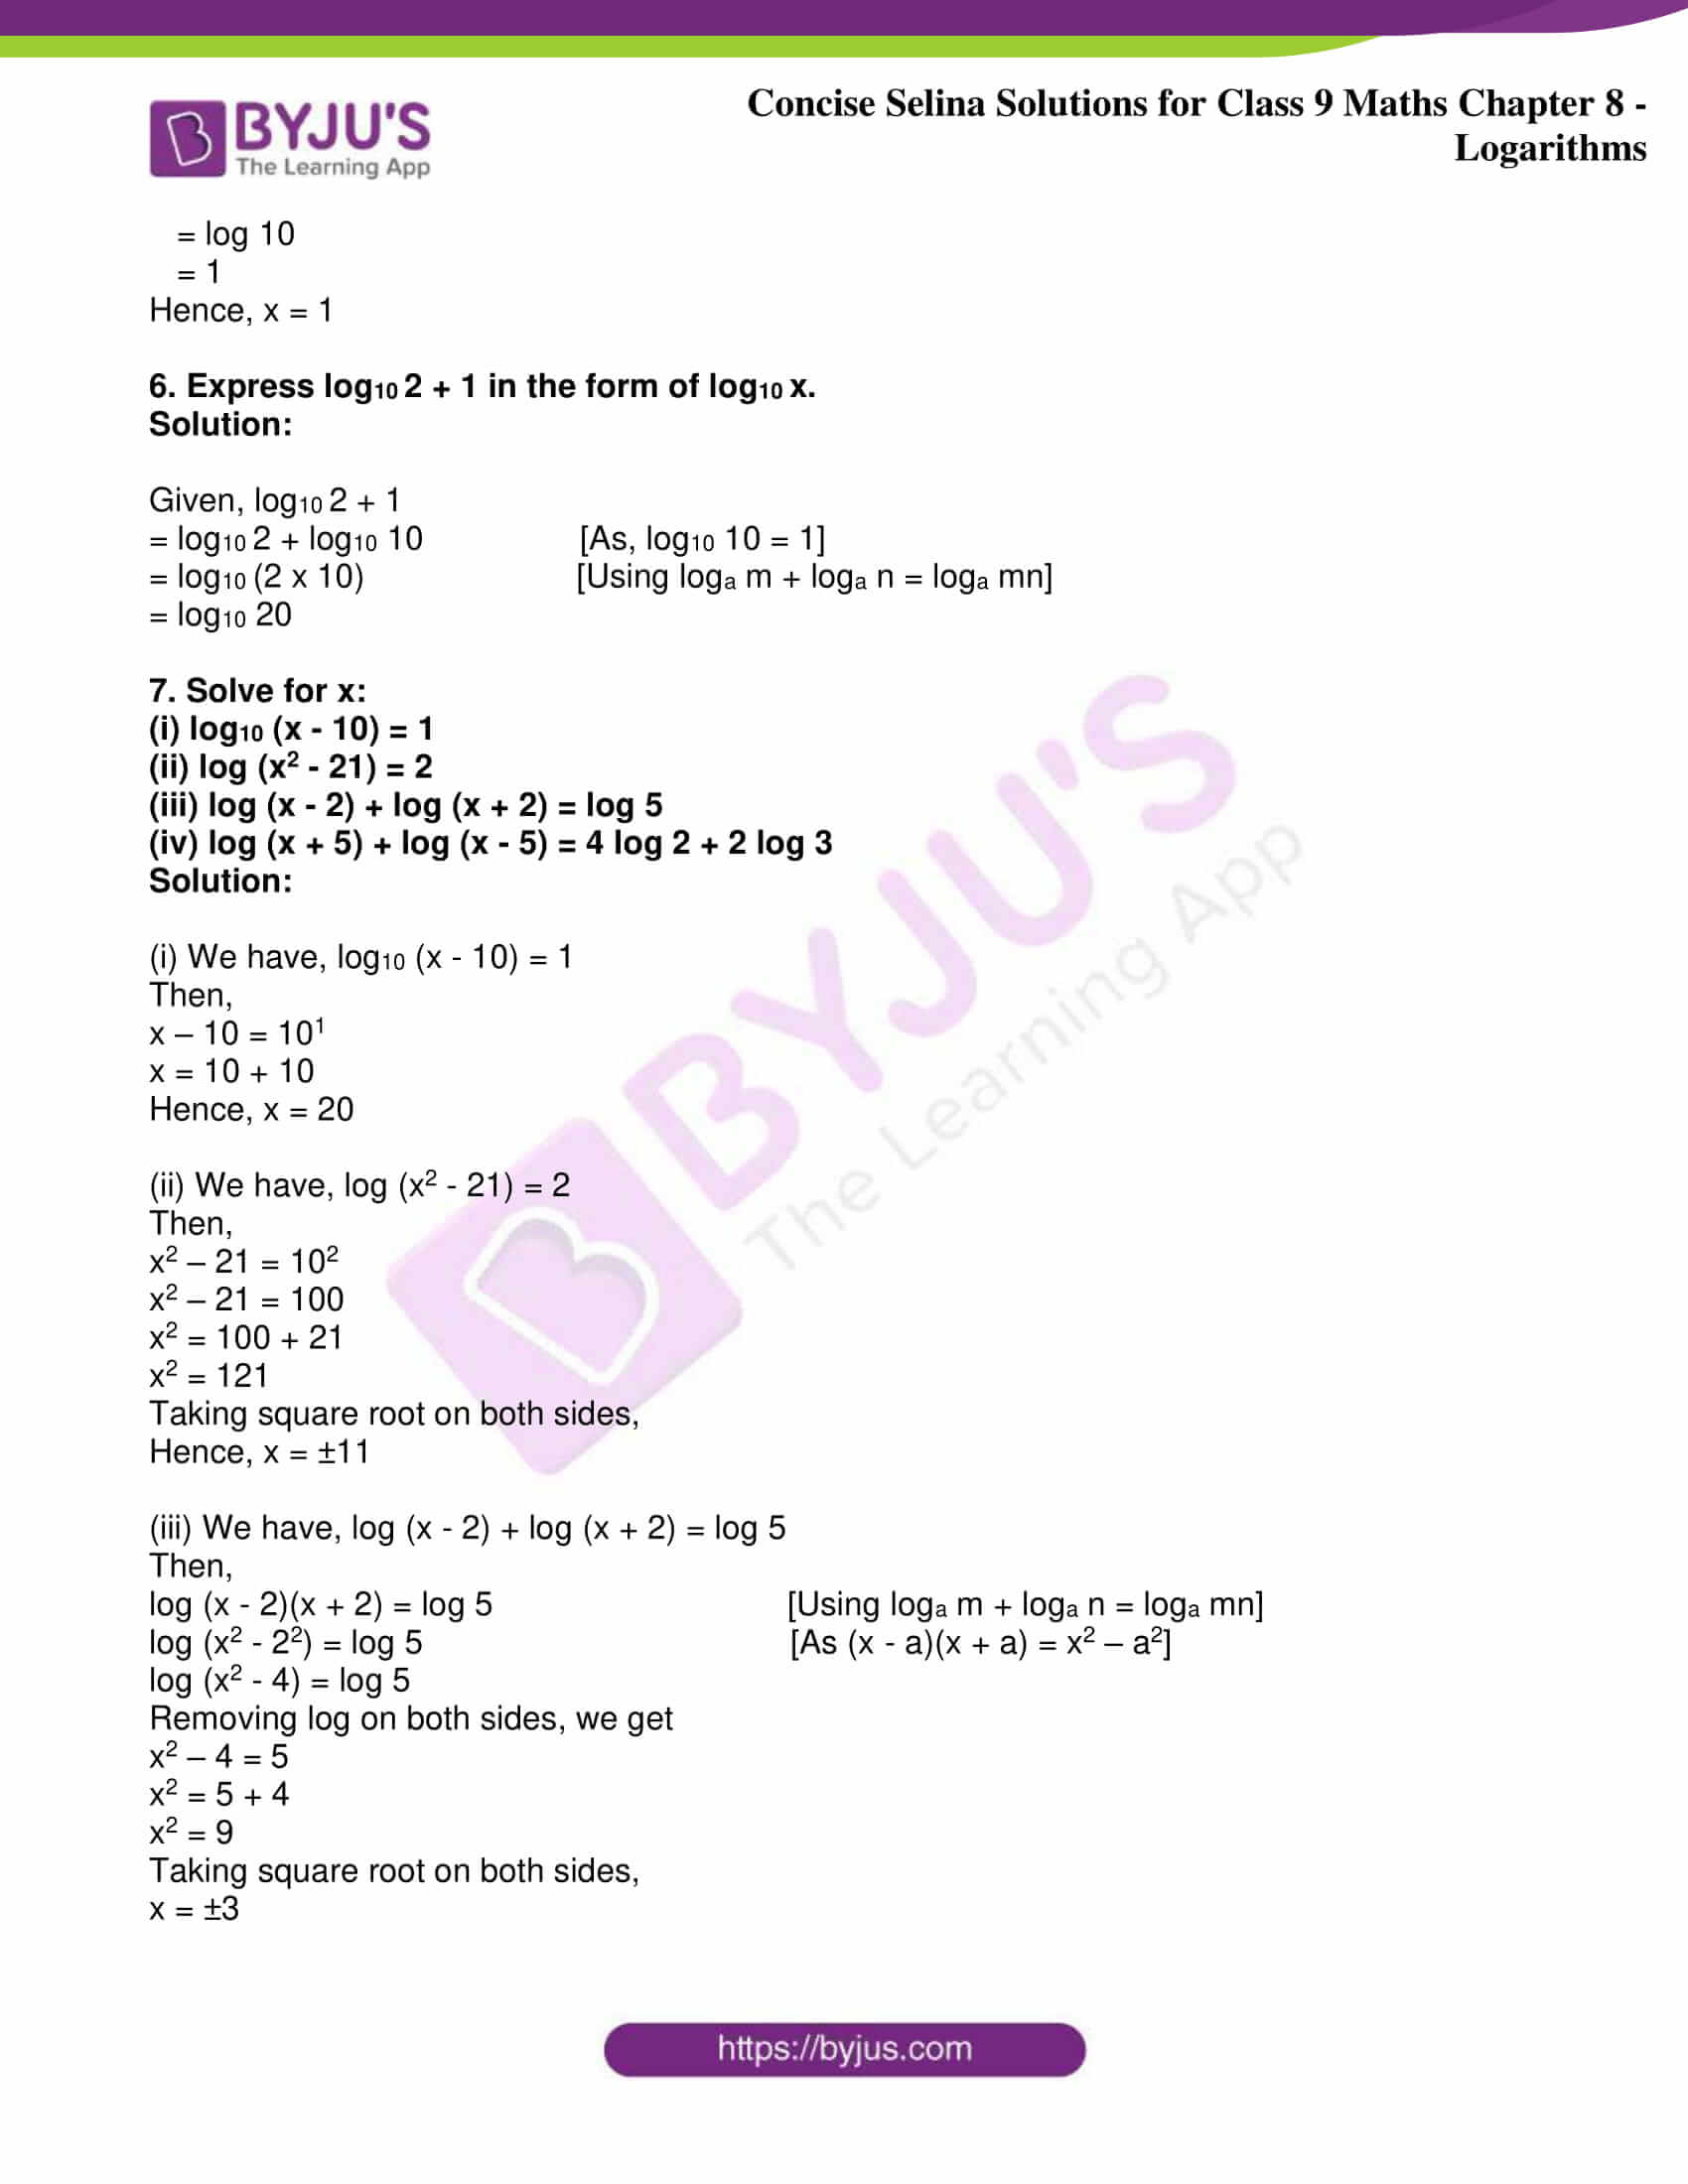 icse class 9 maths may10 selina solutions chapter 8 logarithms 12